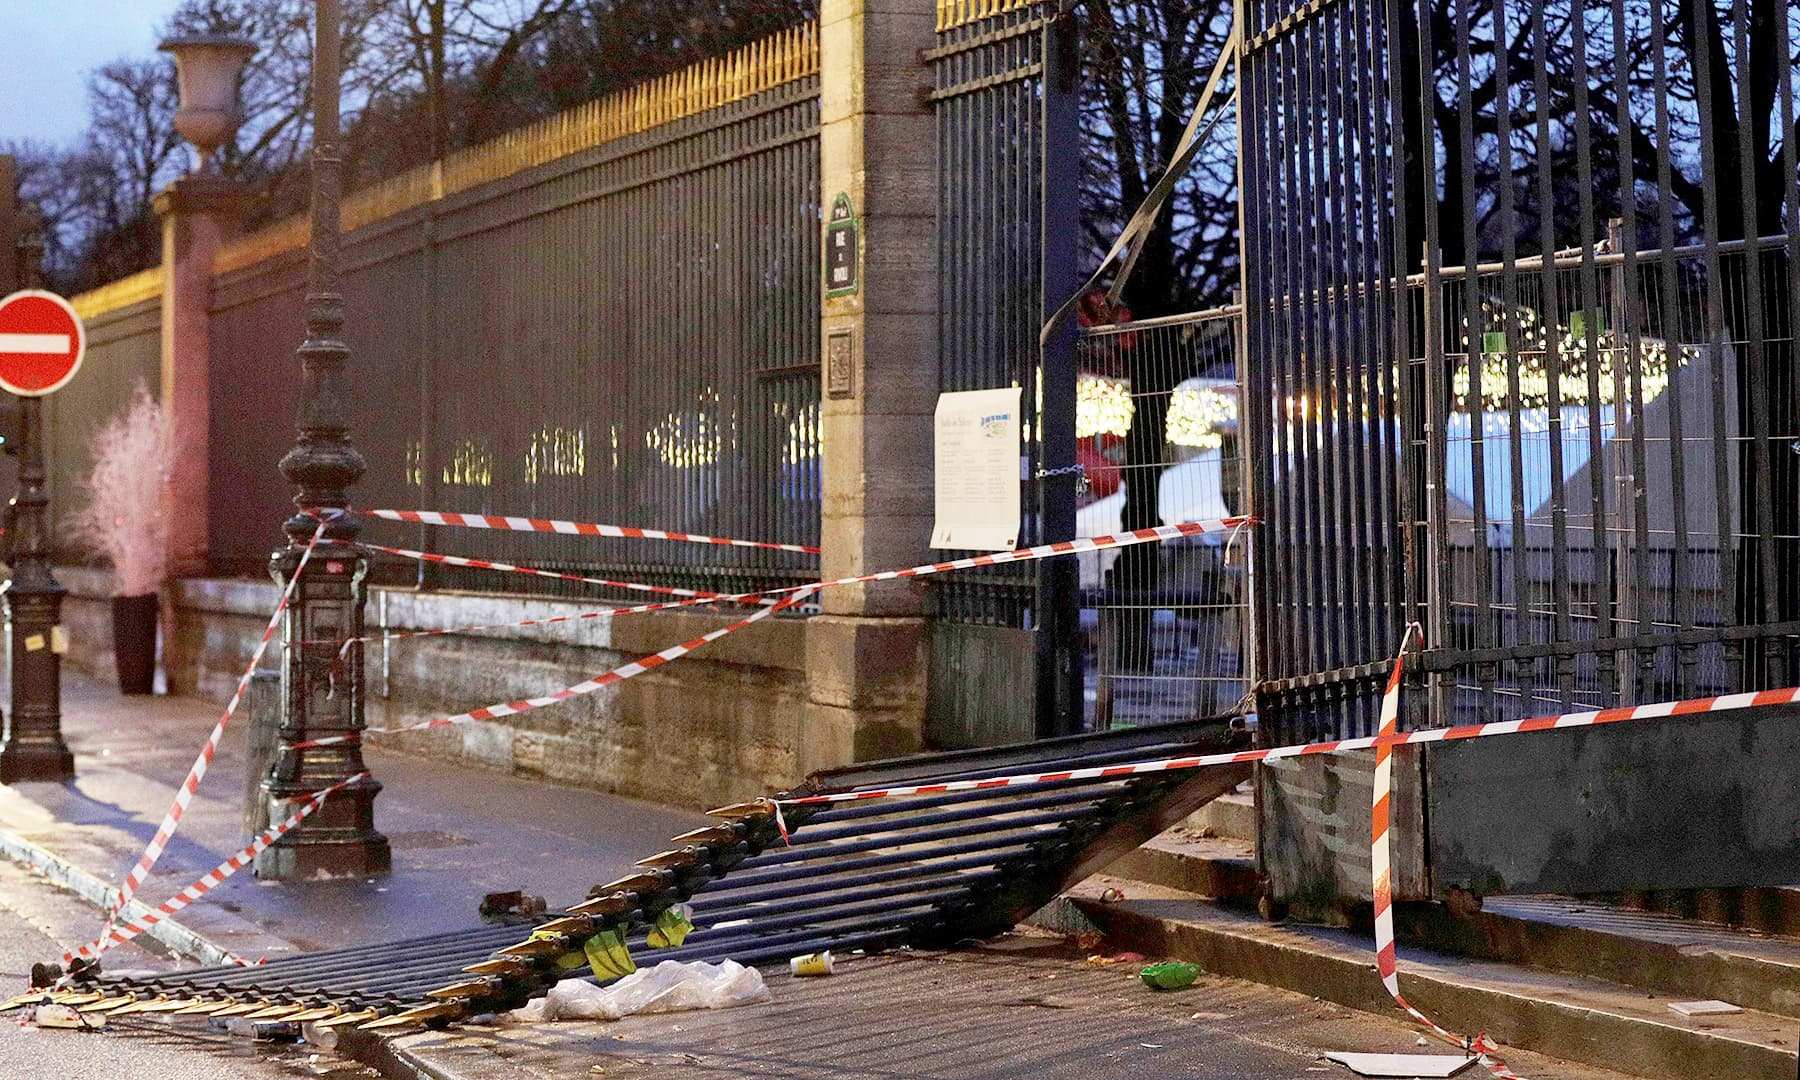 The damaged gates of the Tuileries Gardens. —AFP